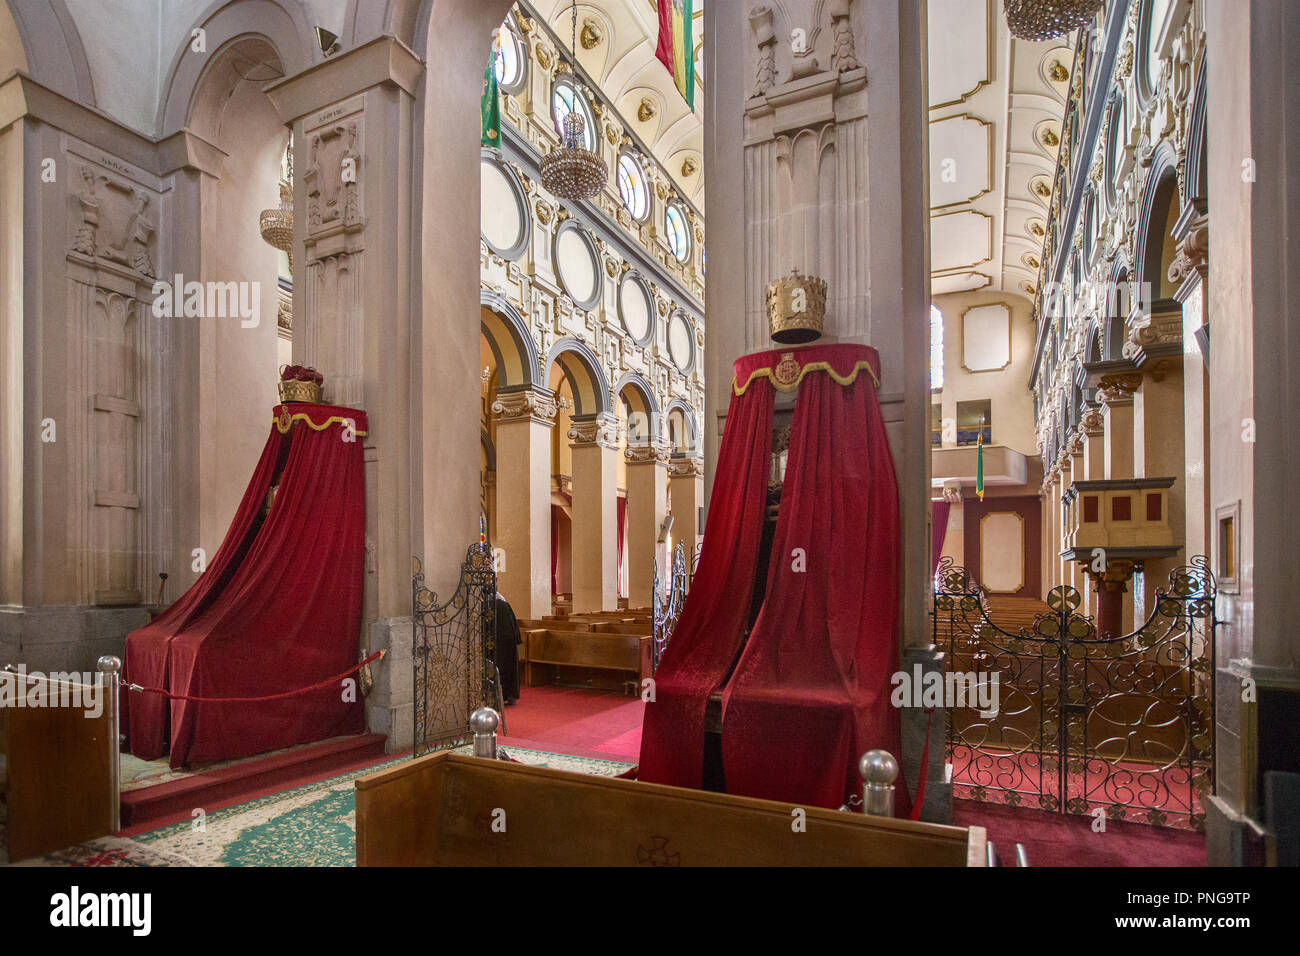 Interior, Holy Trinity Cathedral, known in Amharic as Kidist Selassie, Ethiopian Orthodox Tewahedo Church, resting place for  Emperor Haile Selassie - Stock Image